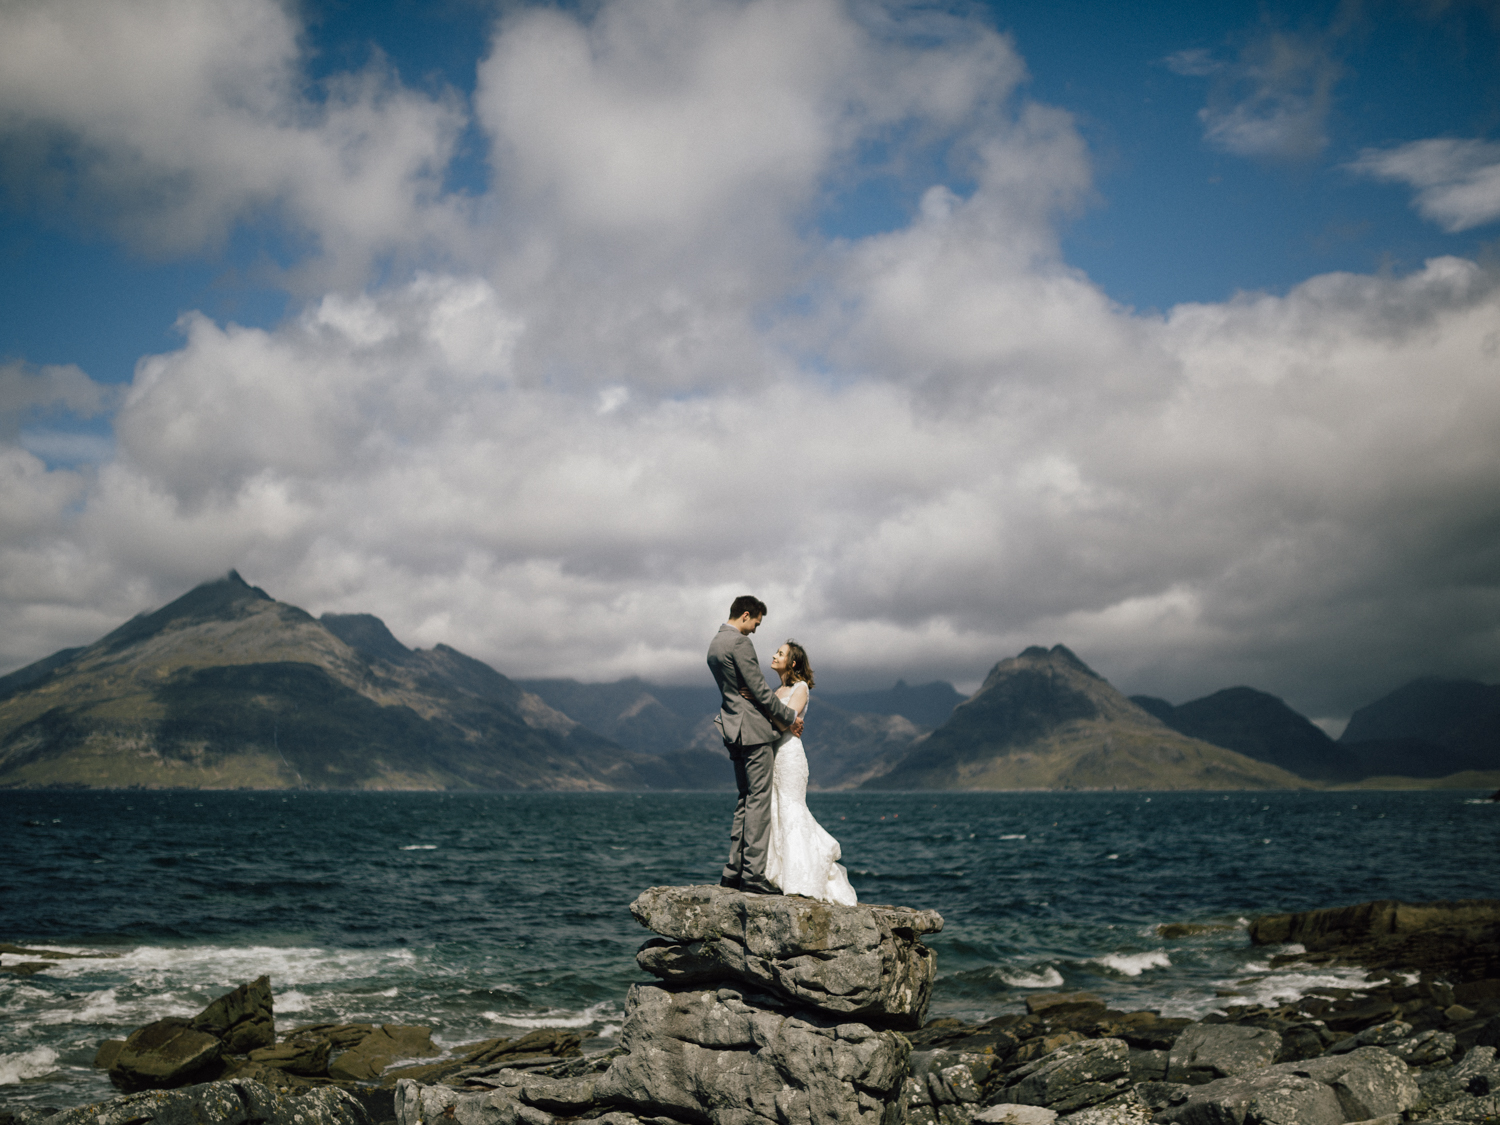 capyture-wedding-photographer-destination-elopement-isle-skye-scotland-348-2